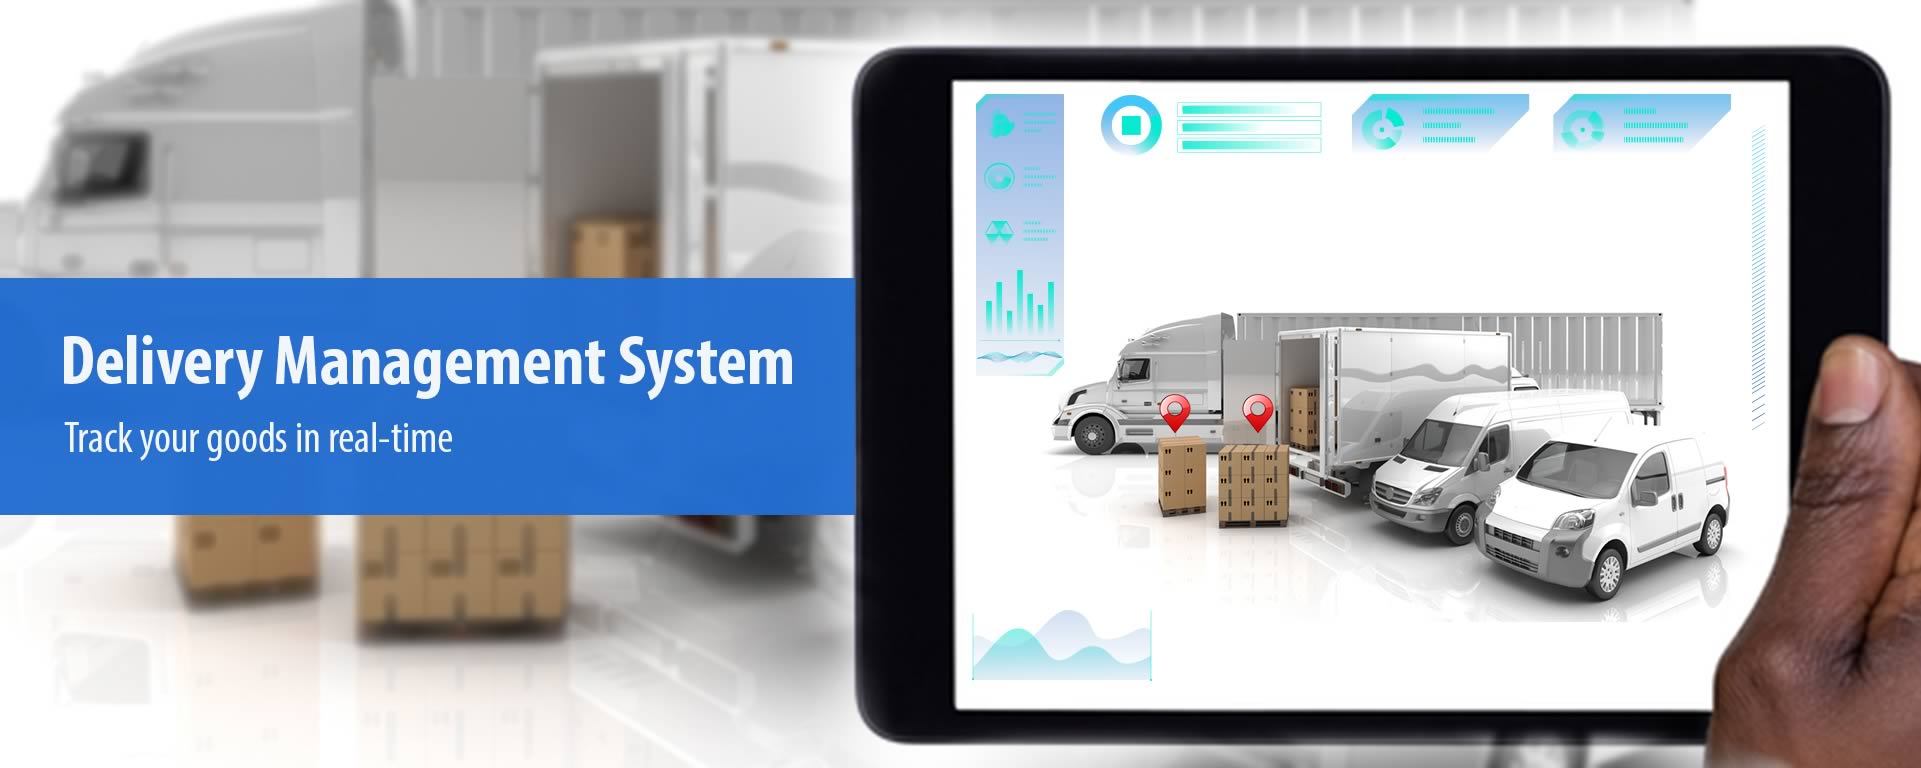 Delivery Management Solution